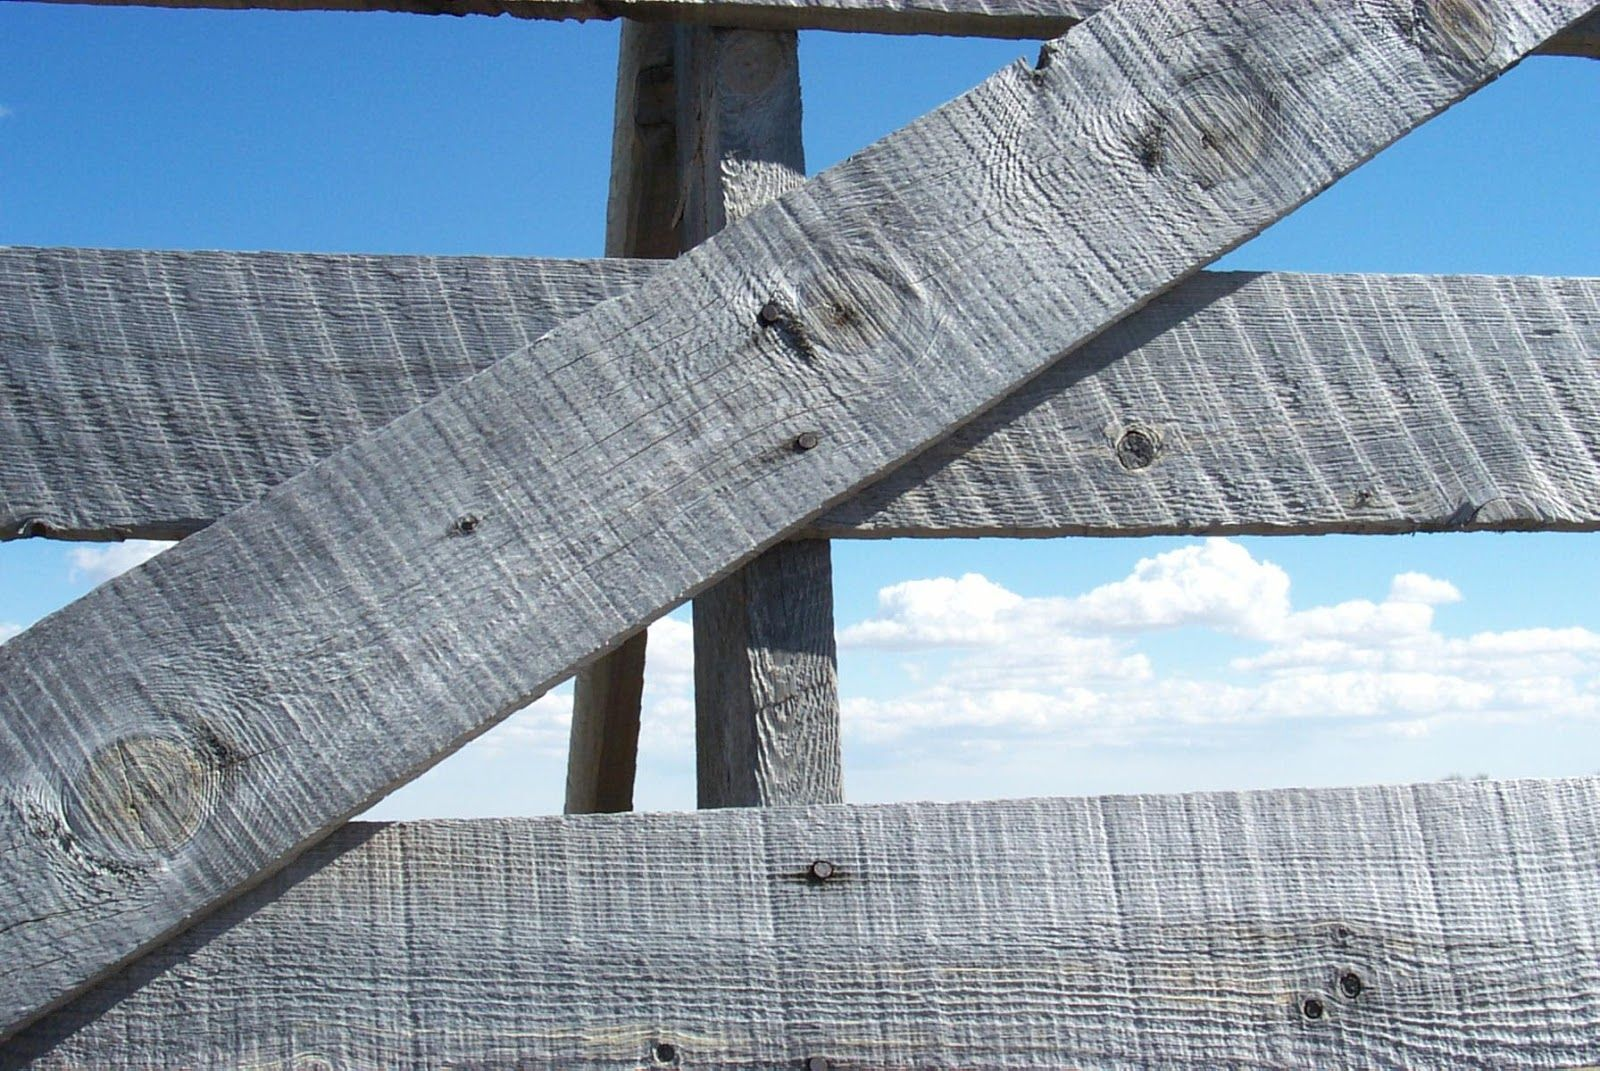 Centennial Woods Llc Was Founded In 1999 To Reclaim And Repurpose Weathered Wood From The Snow Fences In The P Reclaimed Wood Siding Reclaimed Wood Wood Siding